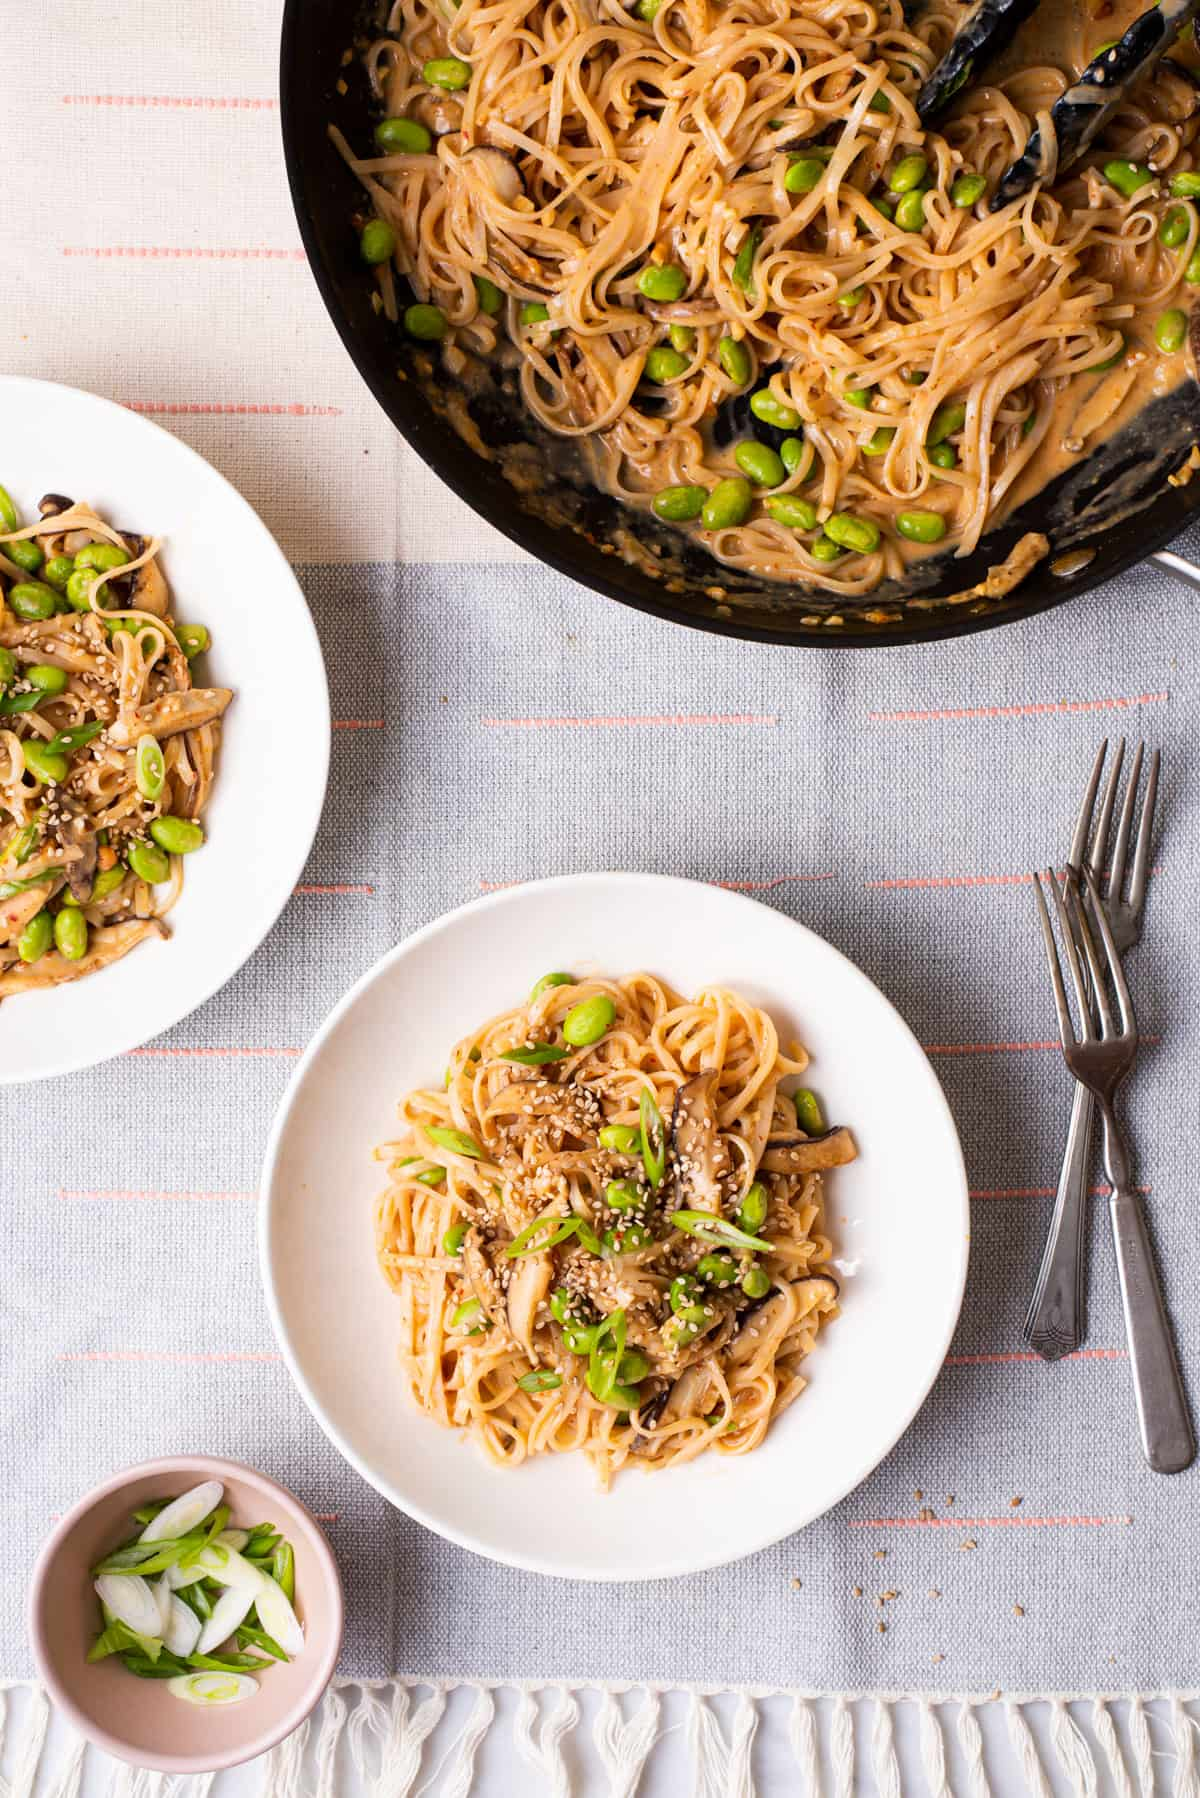 Peanut miso noodles in a skillet next to 2 bowls on a linen tablecloth.